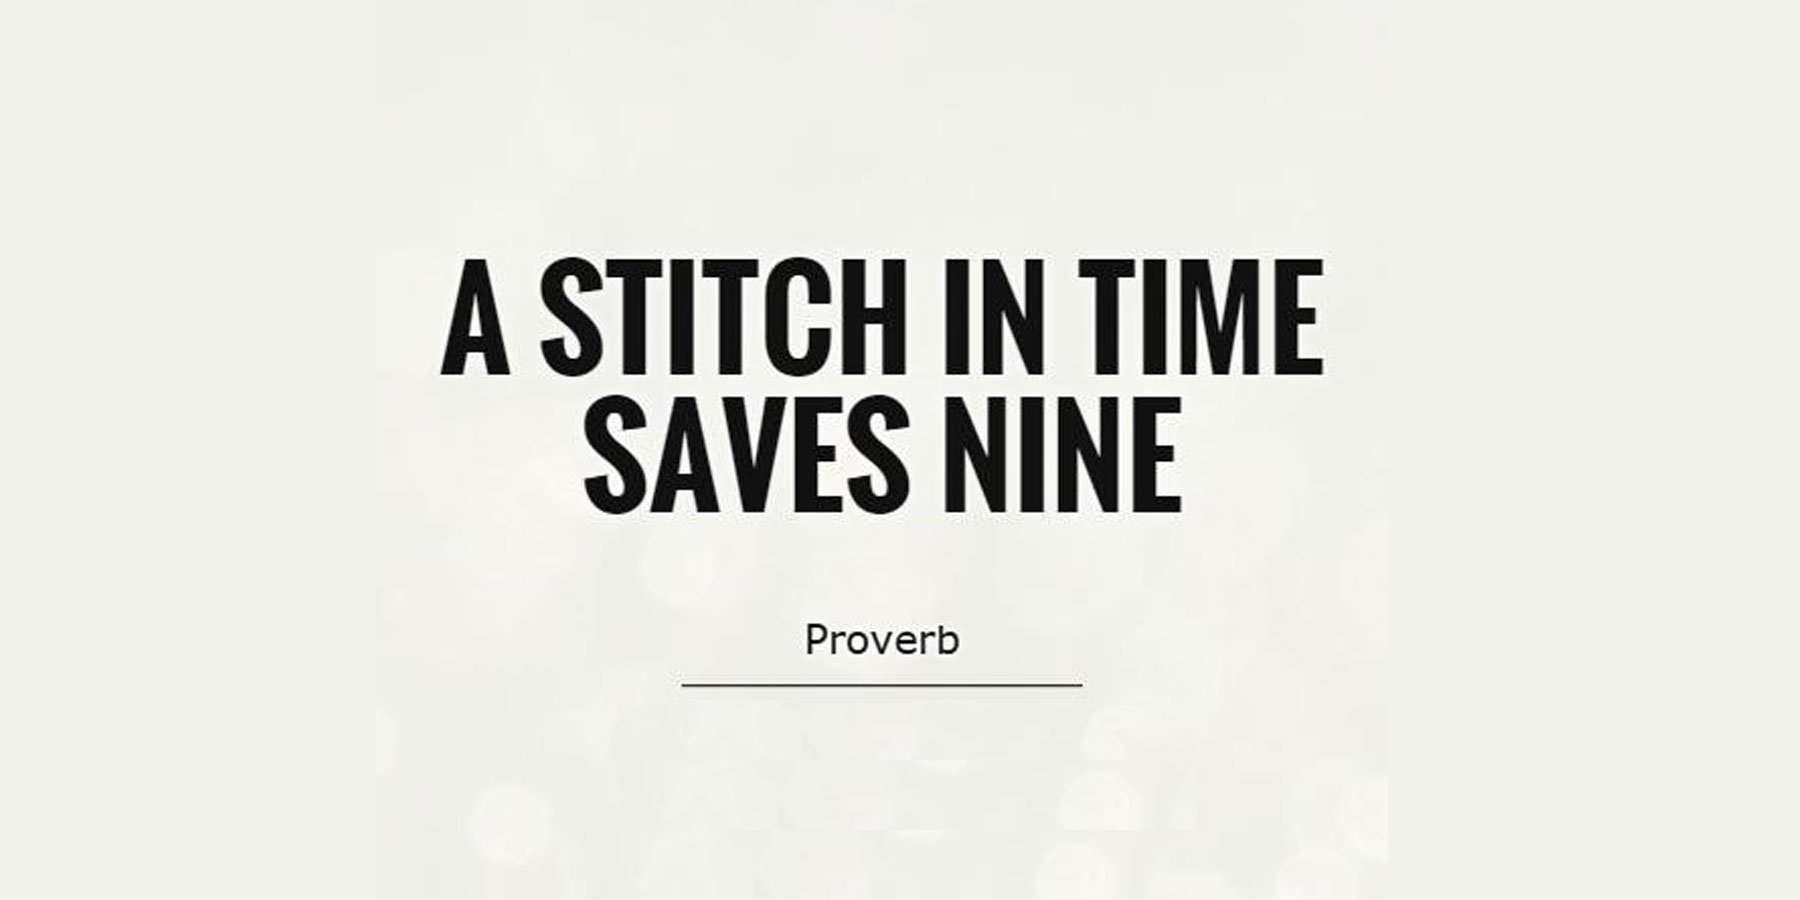 a stitch in time saves nine expansion of idea